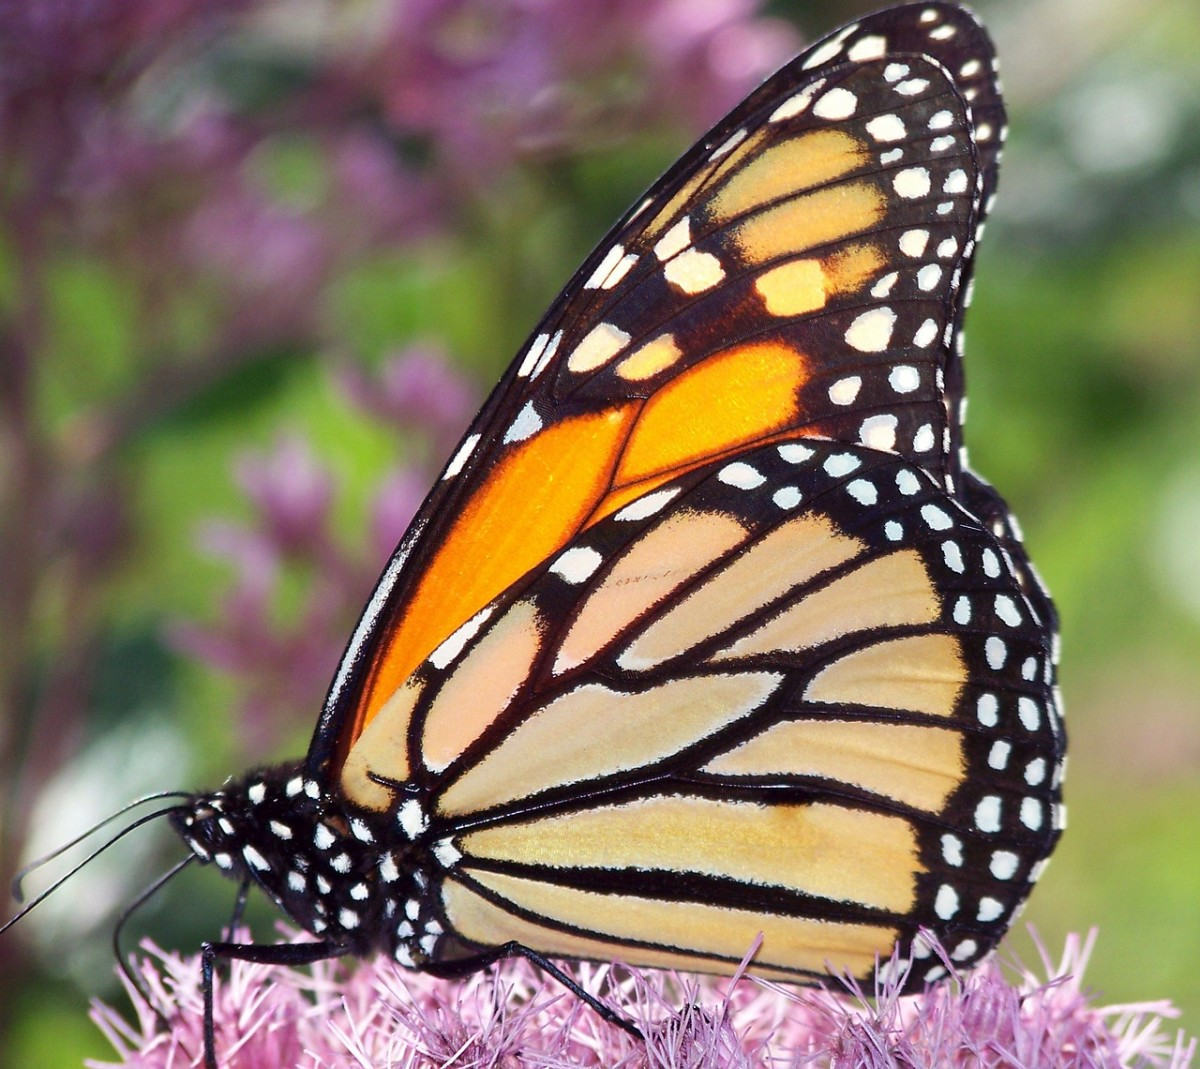 Butterfly Types and Photo Identification Guide to 22 Butterfly Species